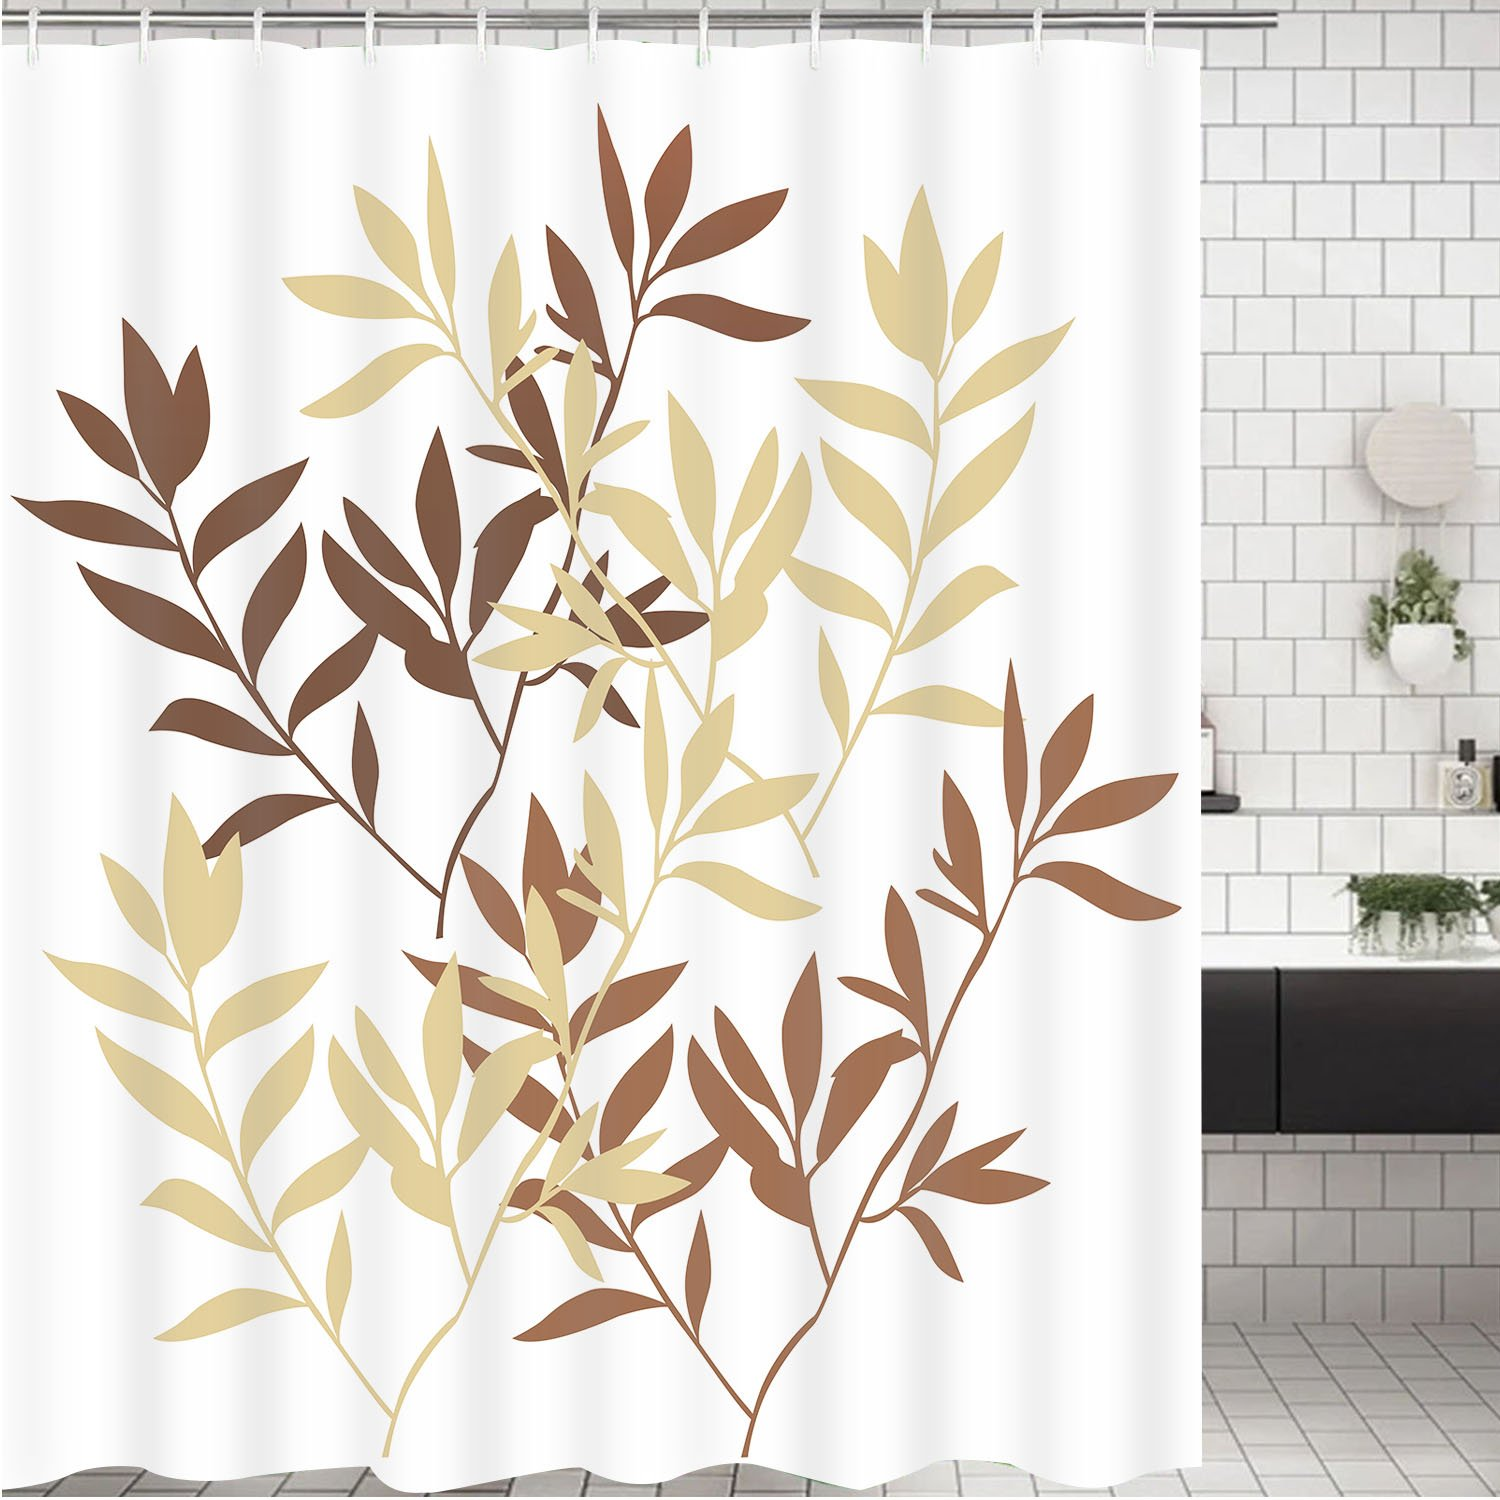 Leaves Shower Curtain Bathroom Shower Curtain Bathroom Curtain Durable Oxford Fabric Bath Curtain Bathroom Accessories Ideas Kitchen Window Curtain with 12 Hooks by Martine Mall